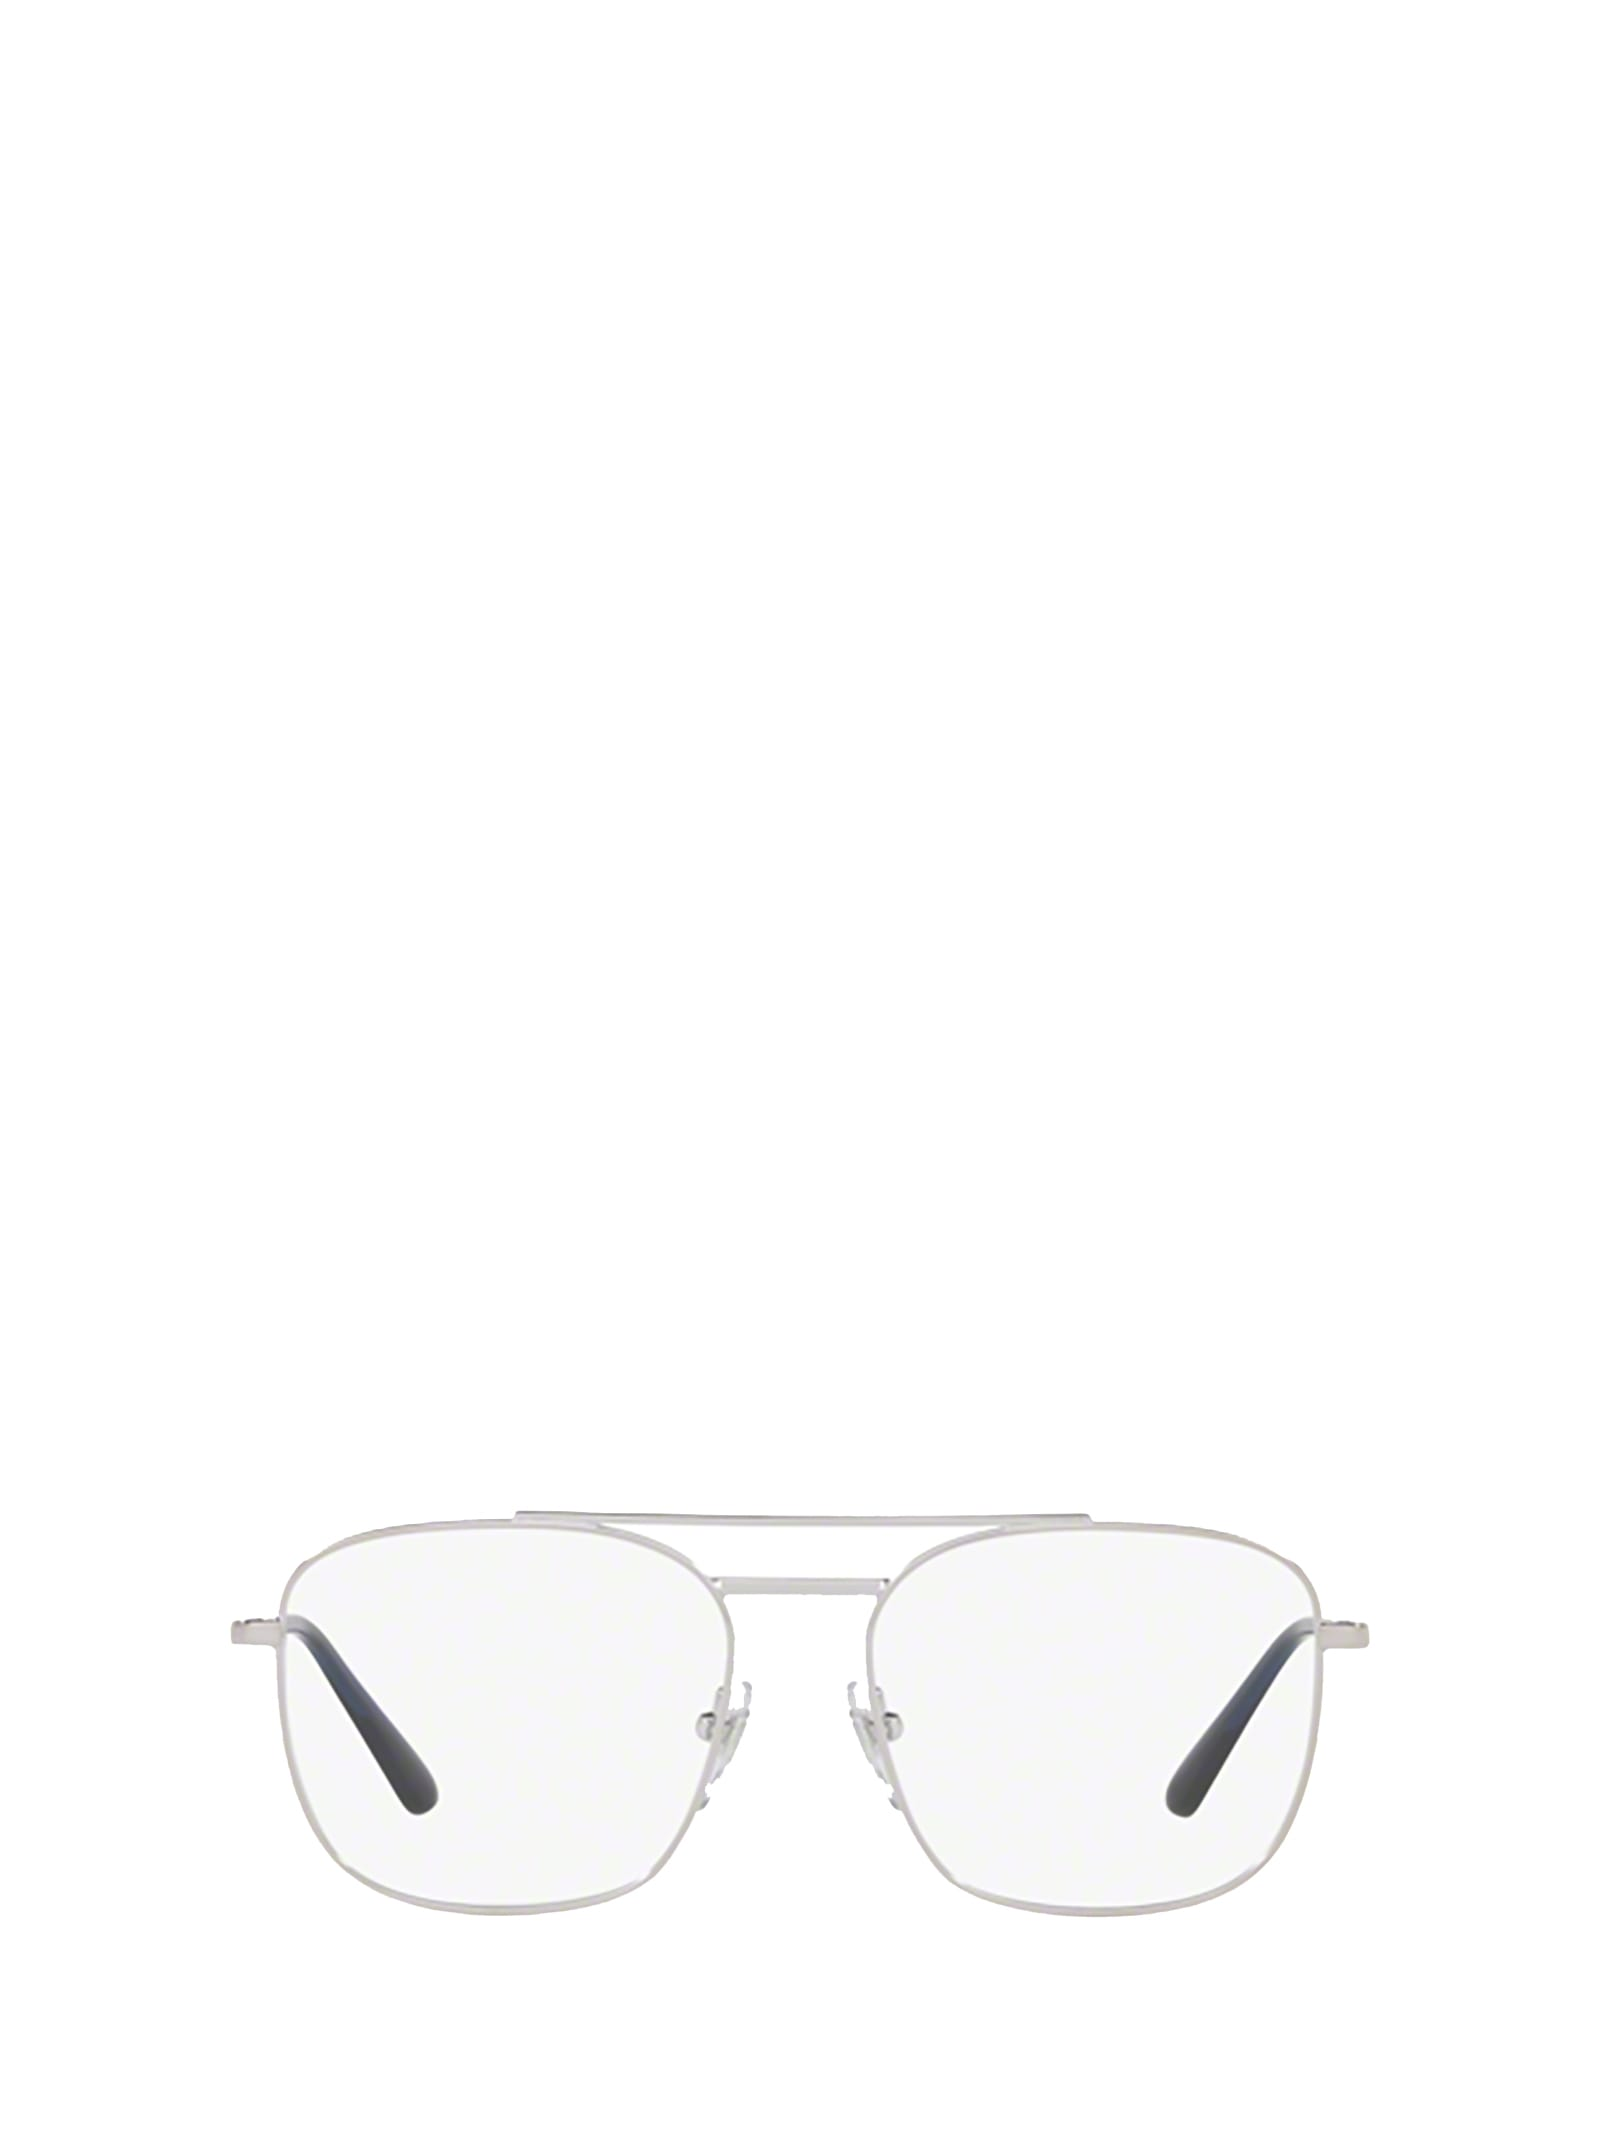 Vogue Eyewear Vogue Vo4140 Silver Glasses